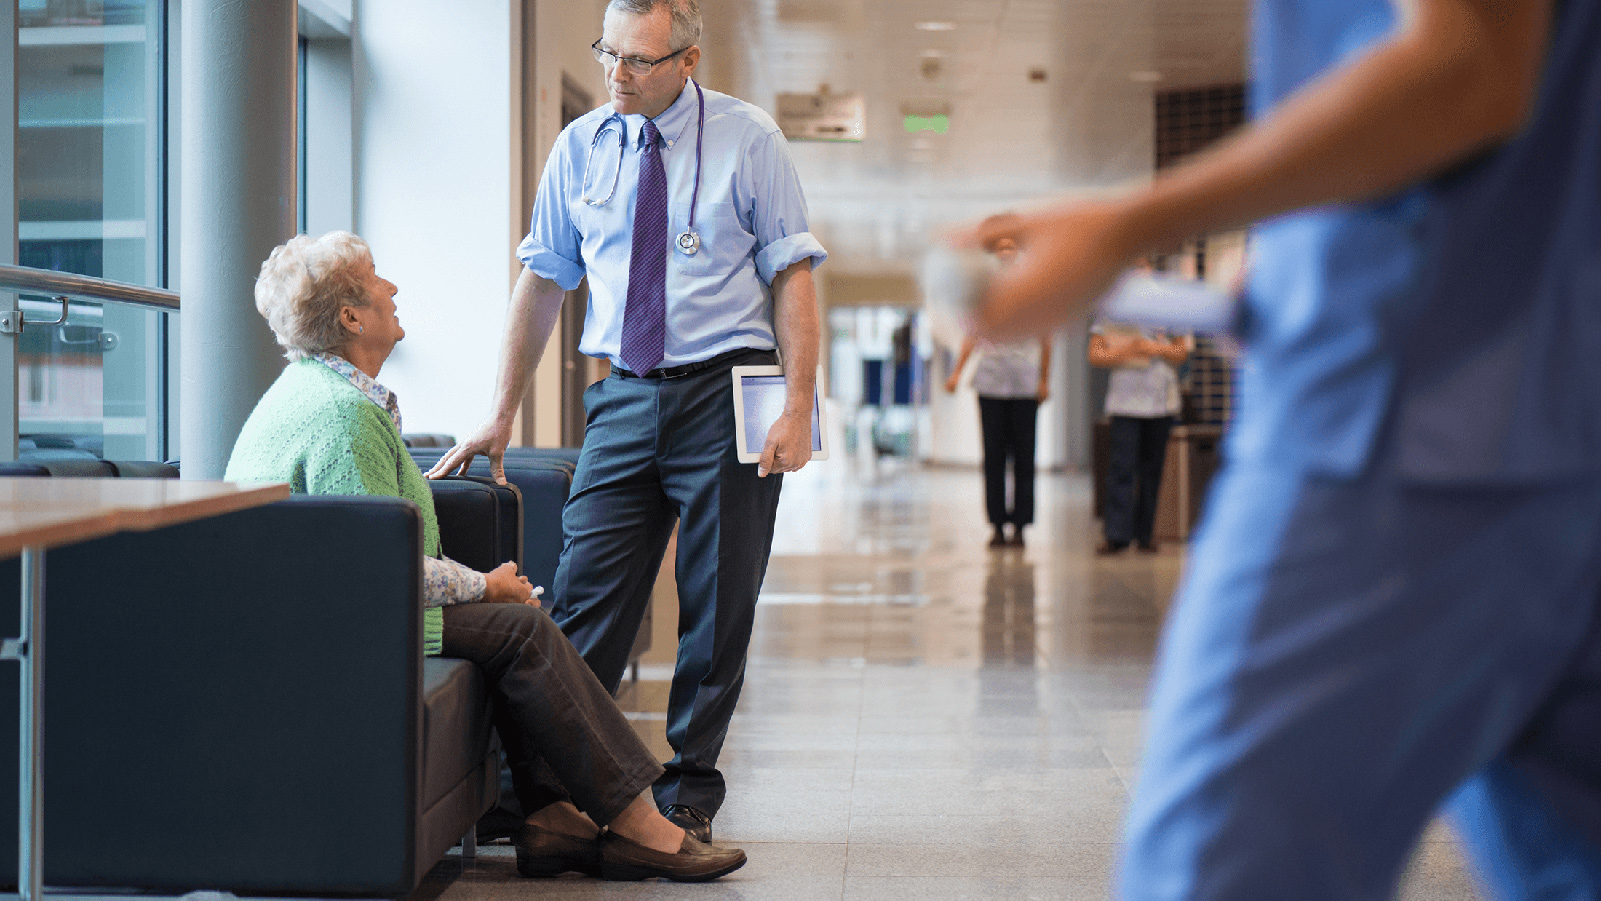 Medical professional speaking with a woman in the lobby of a medical building.